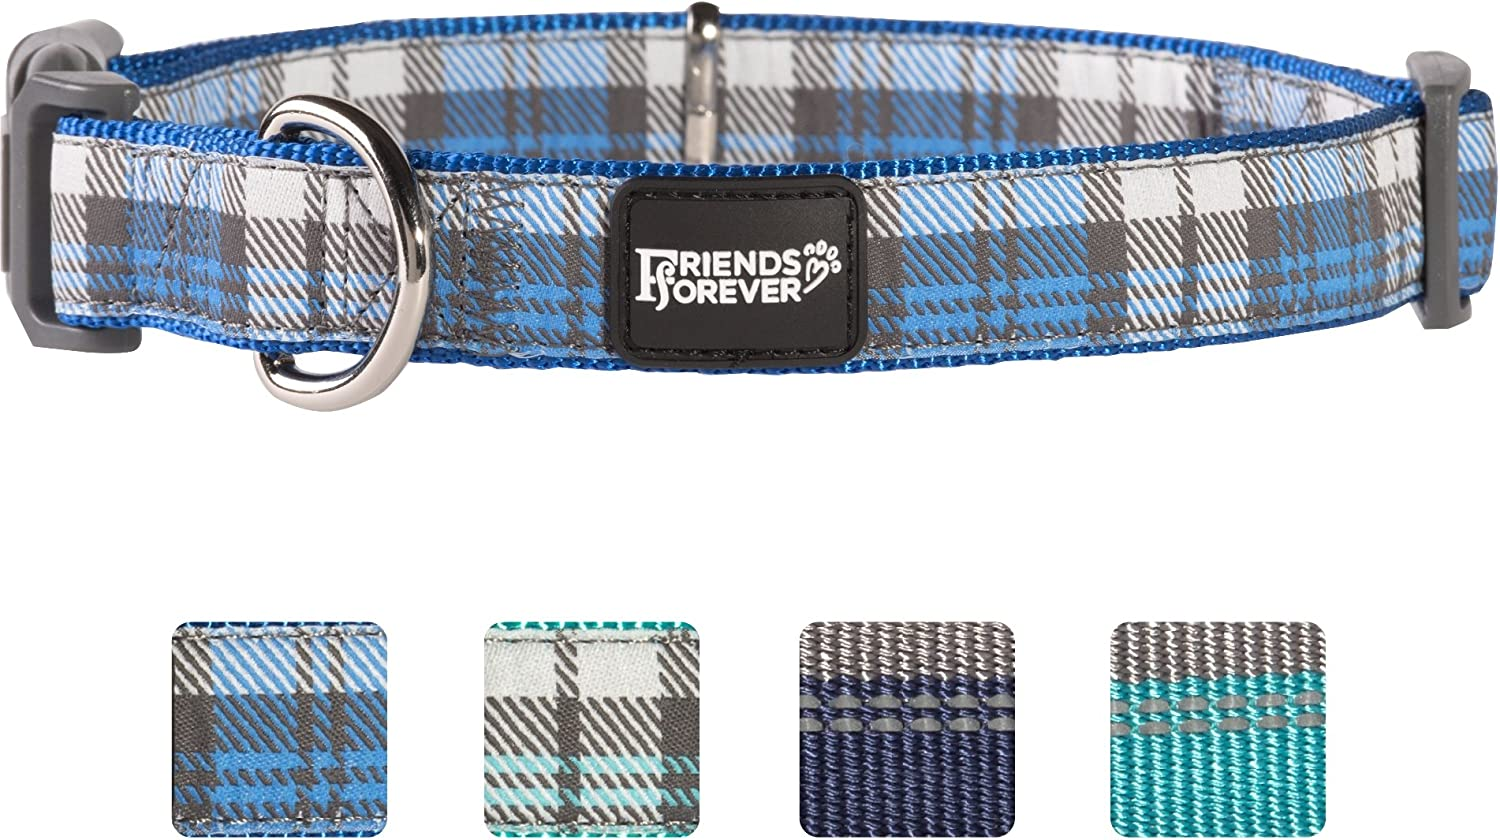 Friends Forever Plaid Dog Collar for Dogs, Fashion Woven Checkers Pattern, Cute Puppy Collar, bluee Medium 1420